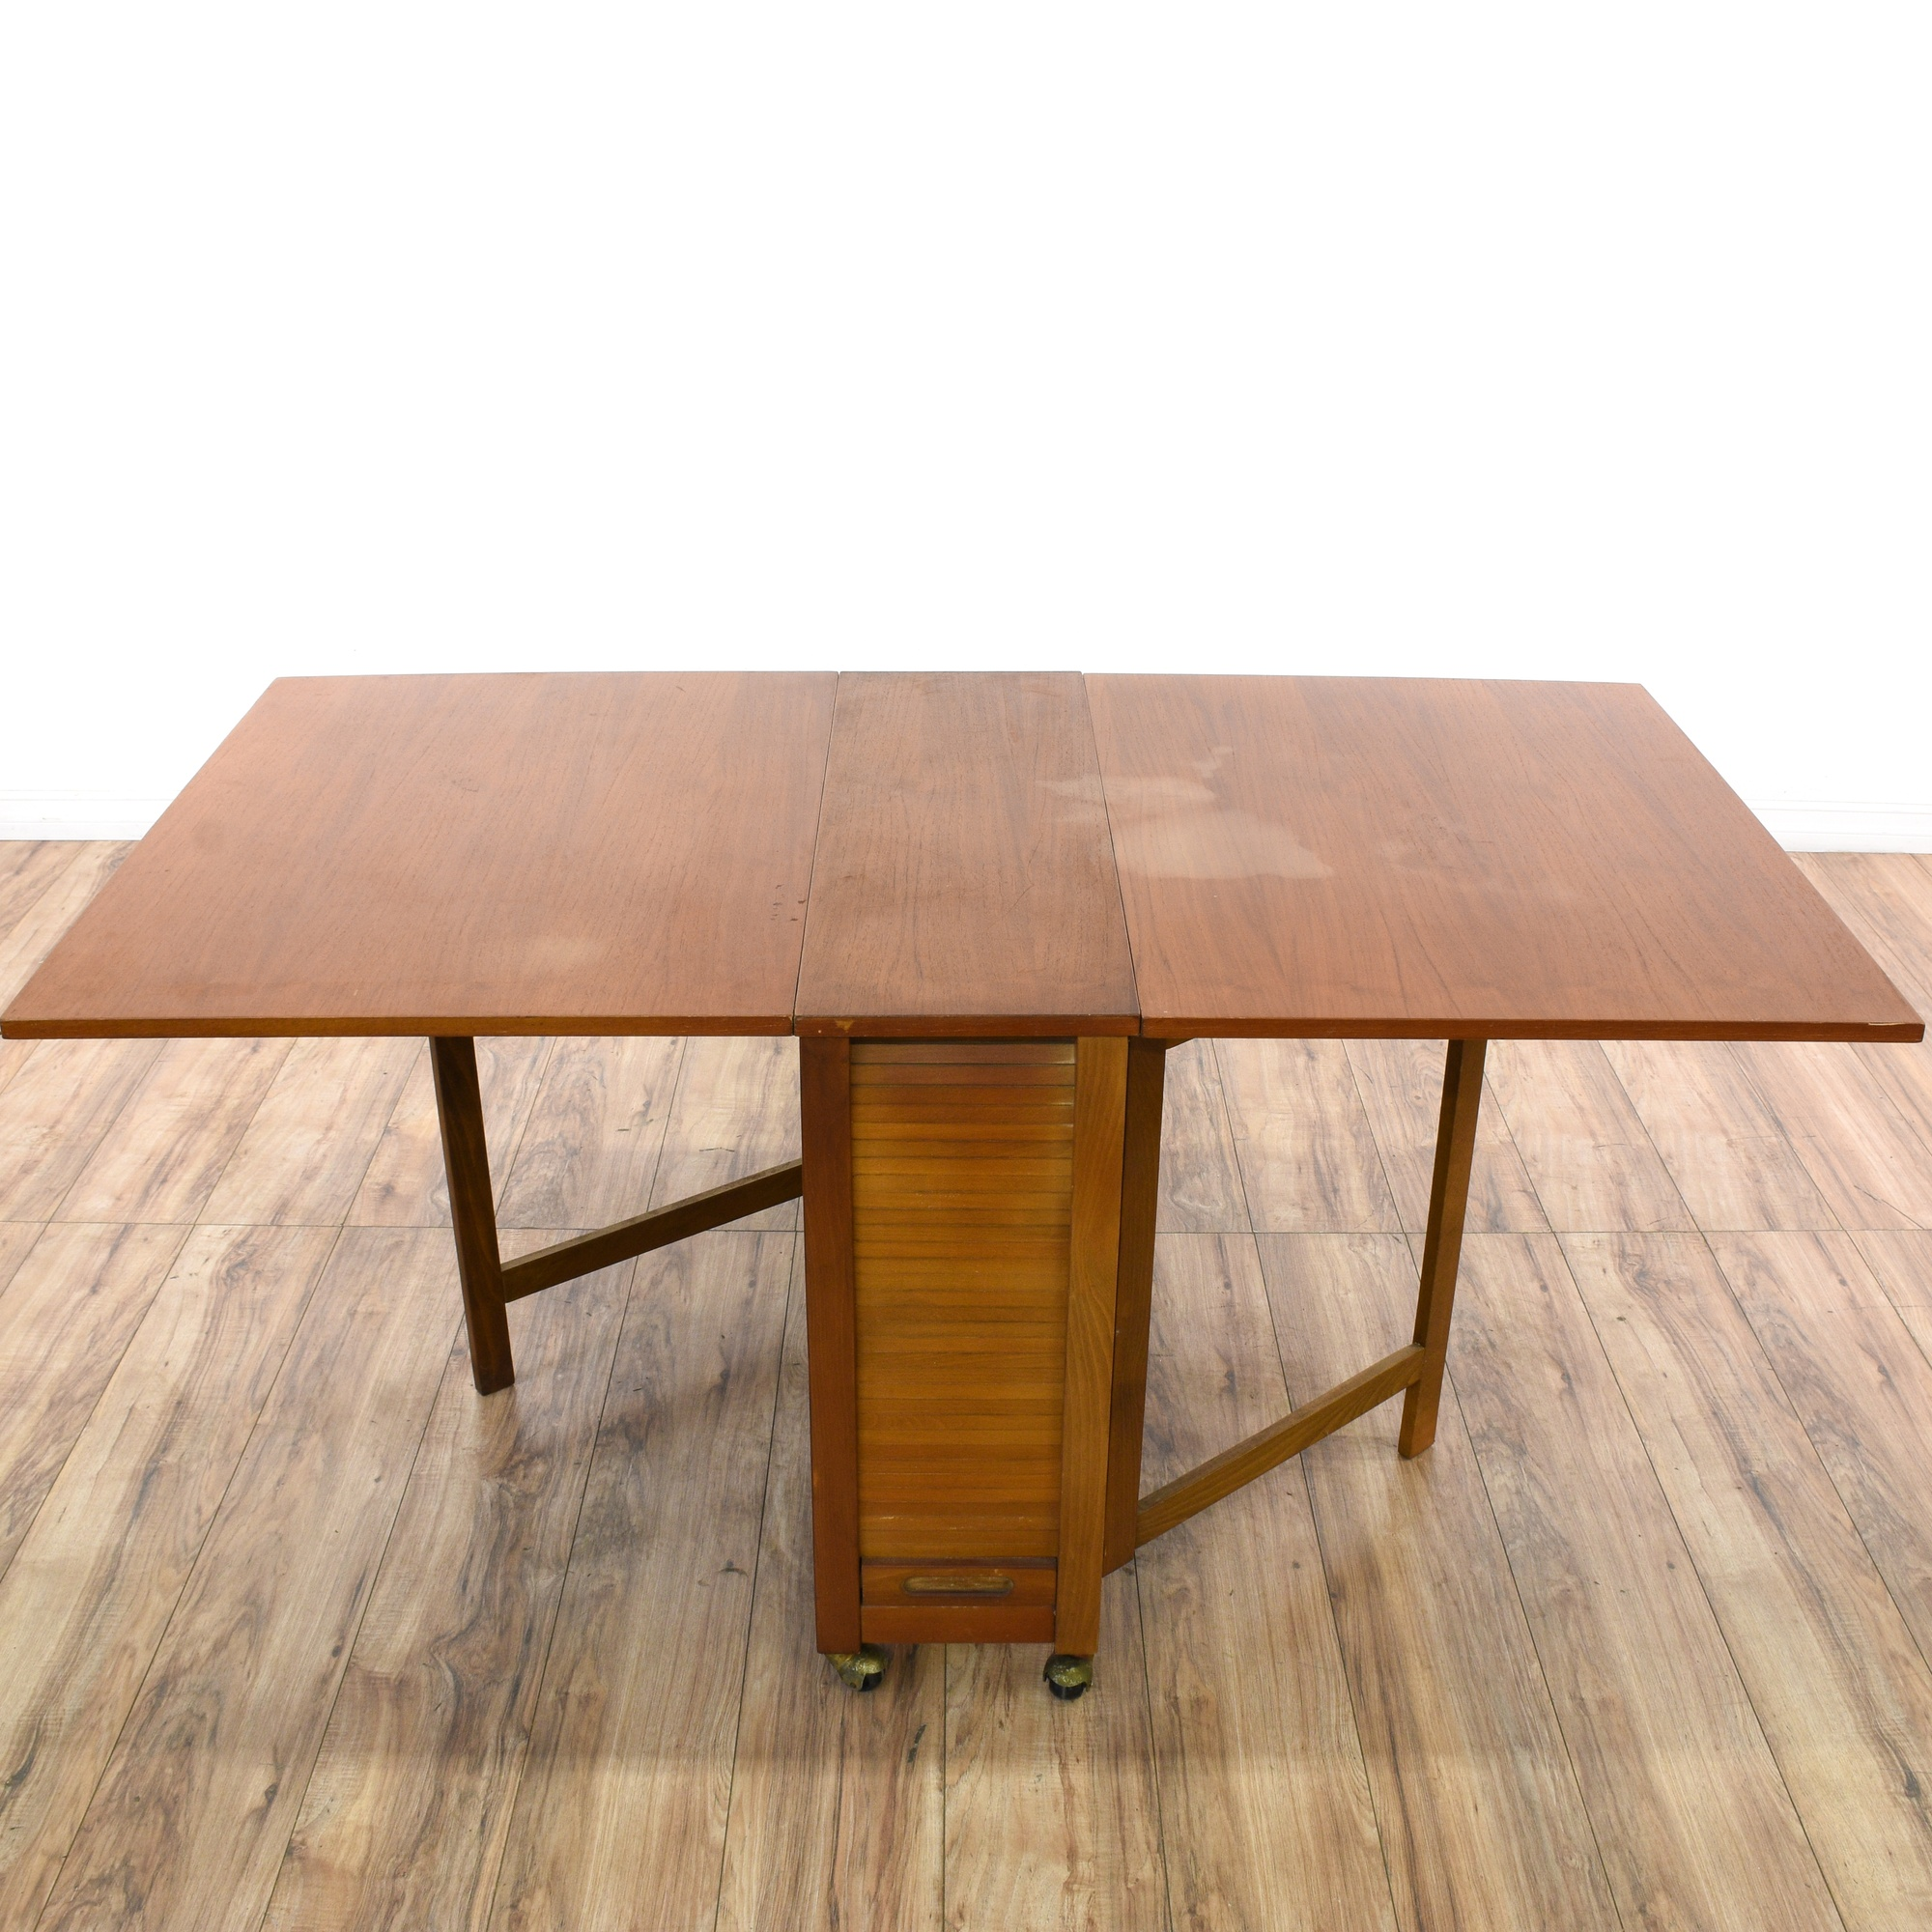 Convert Fit Crop Rotate Exif Mid Century Modern Furniture San